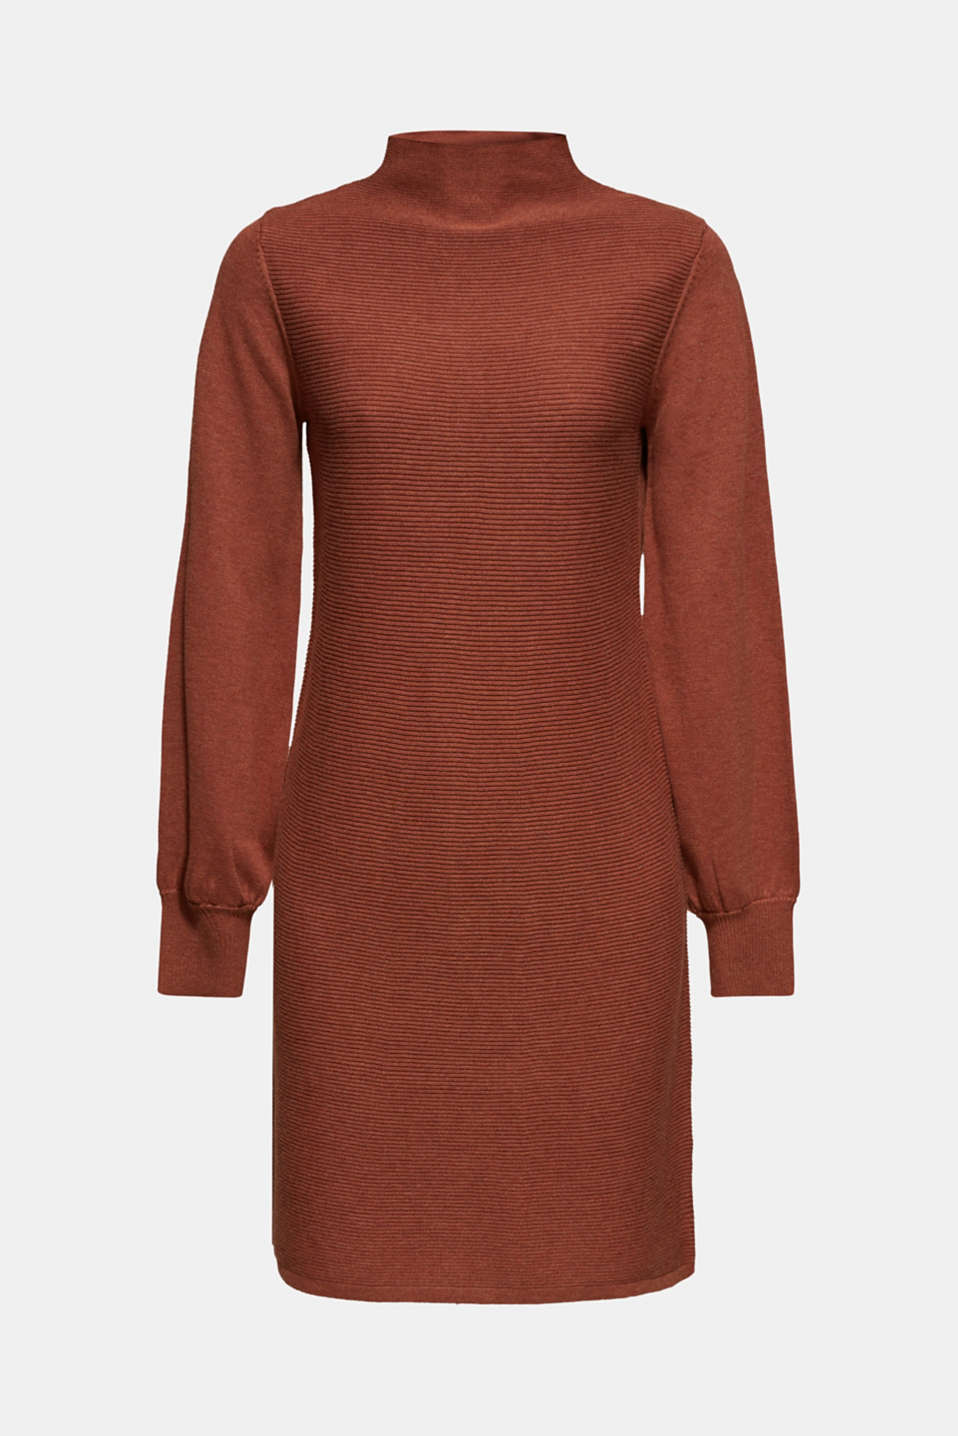 Knitted dress with balloon sleeves, 100% cotton, RUST BROWN 5, detail image number 6